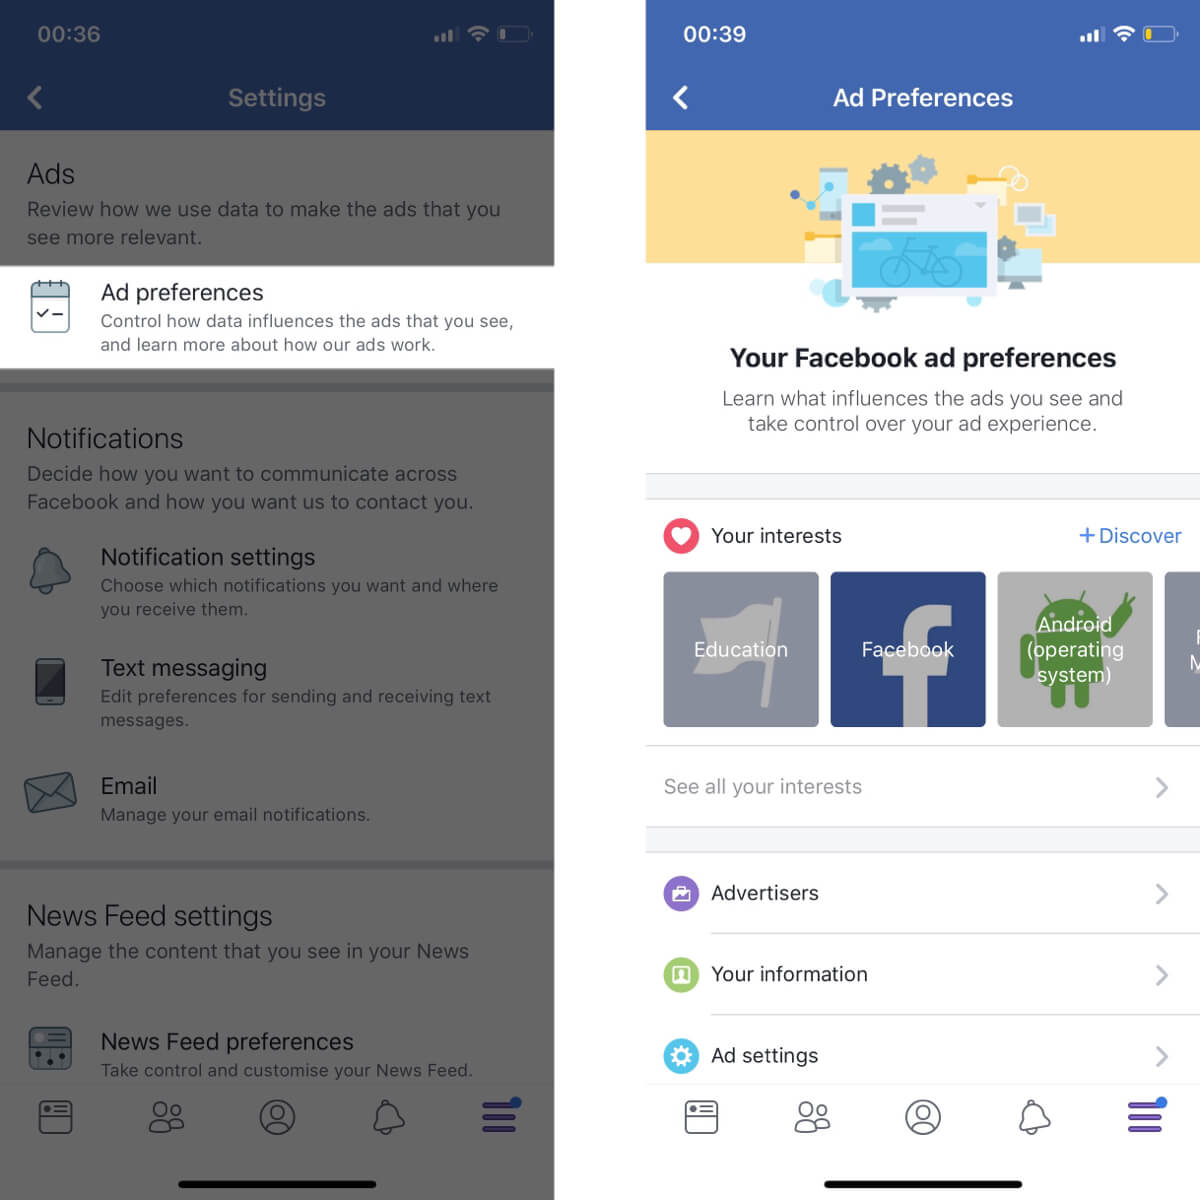 Screenshots showing how to access your ad preference settings on Facebook.